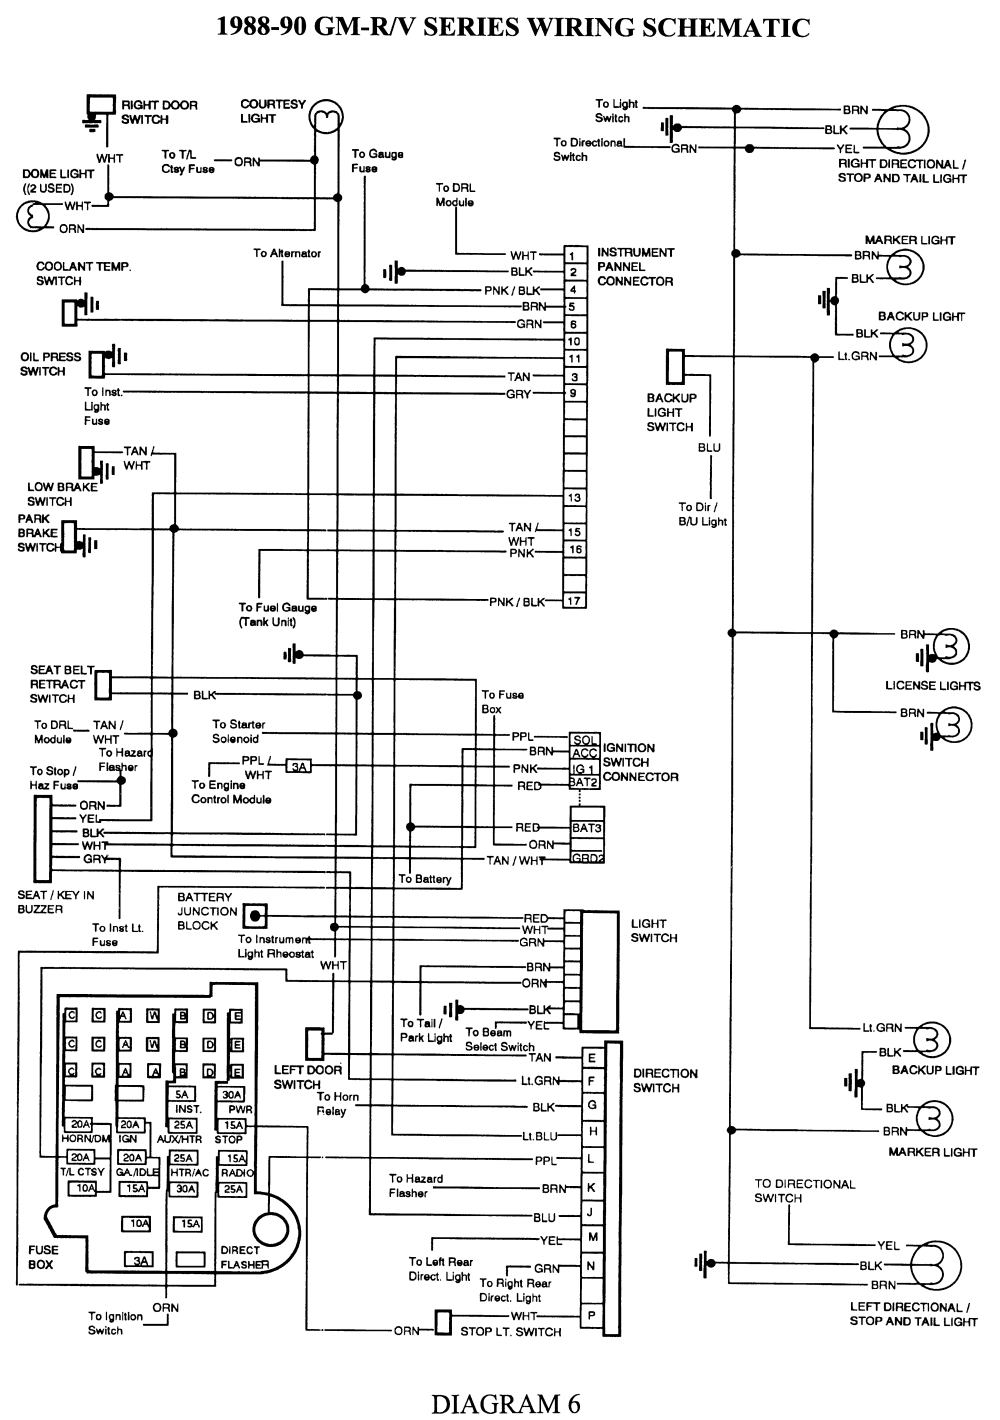 2003 chevy suburban wiring diagram | free wiring diagram 1998 chevy suburban wiring harness chevy suburban wiring harness